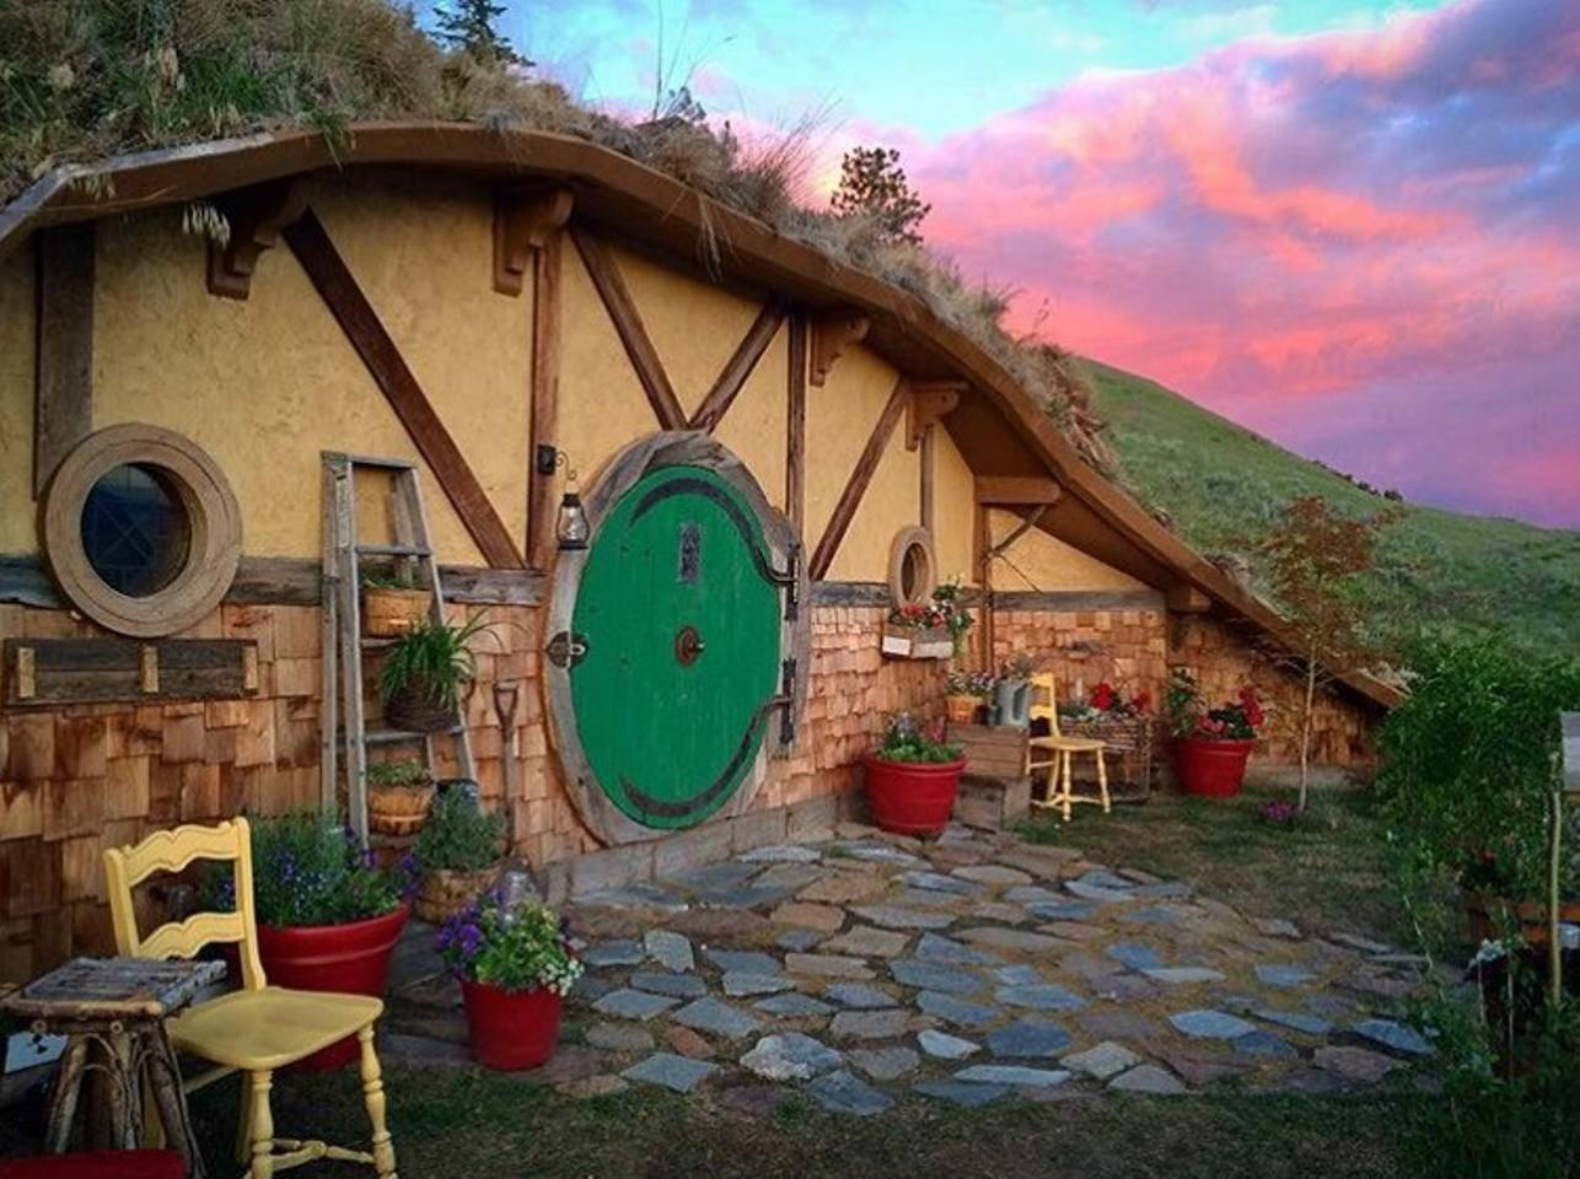 Spend The Night In This Magical Hobbit House Tucked Into